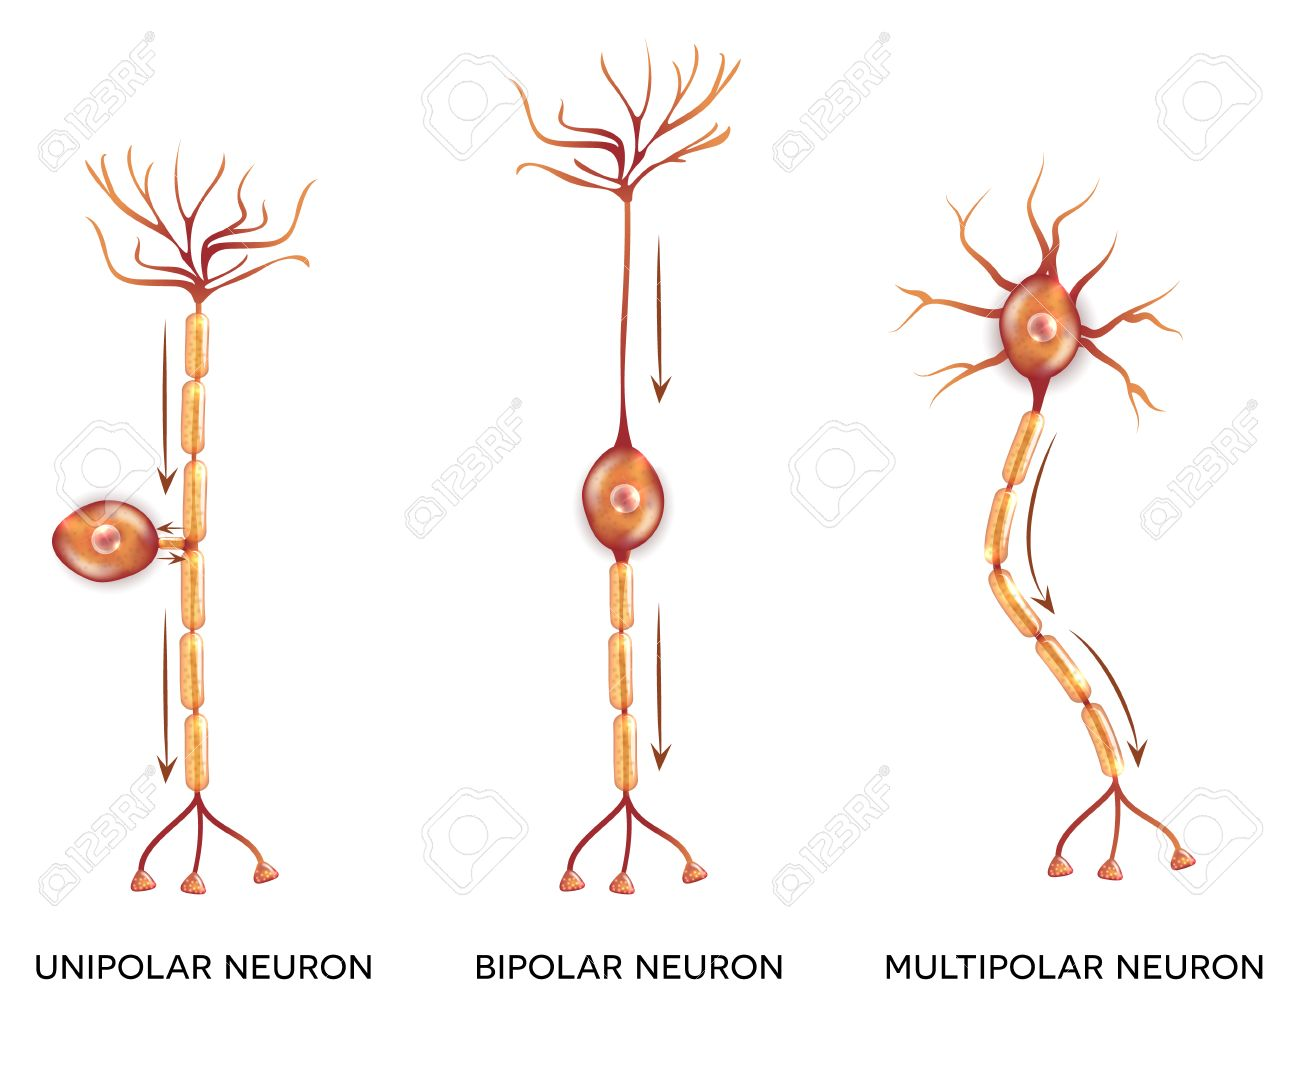 Neuron Types Nerve Cells That Is The Main Part Of The Nervous